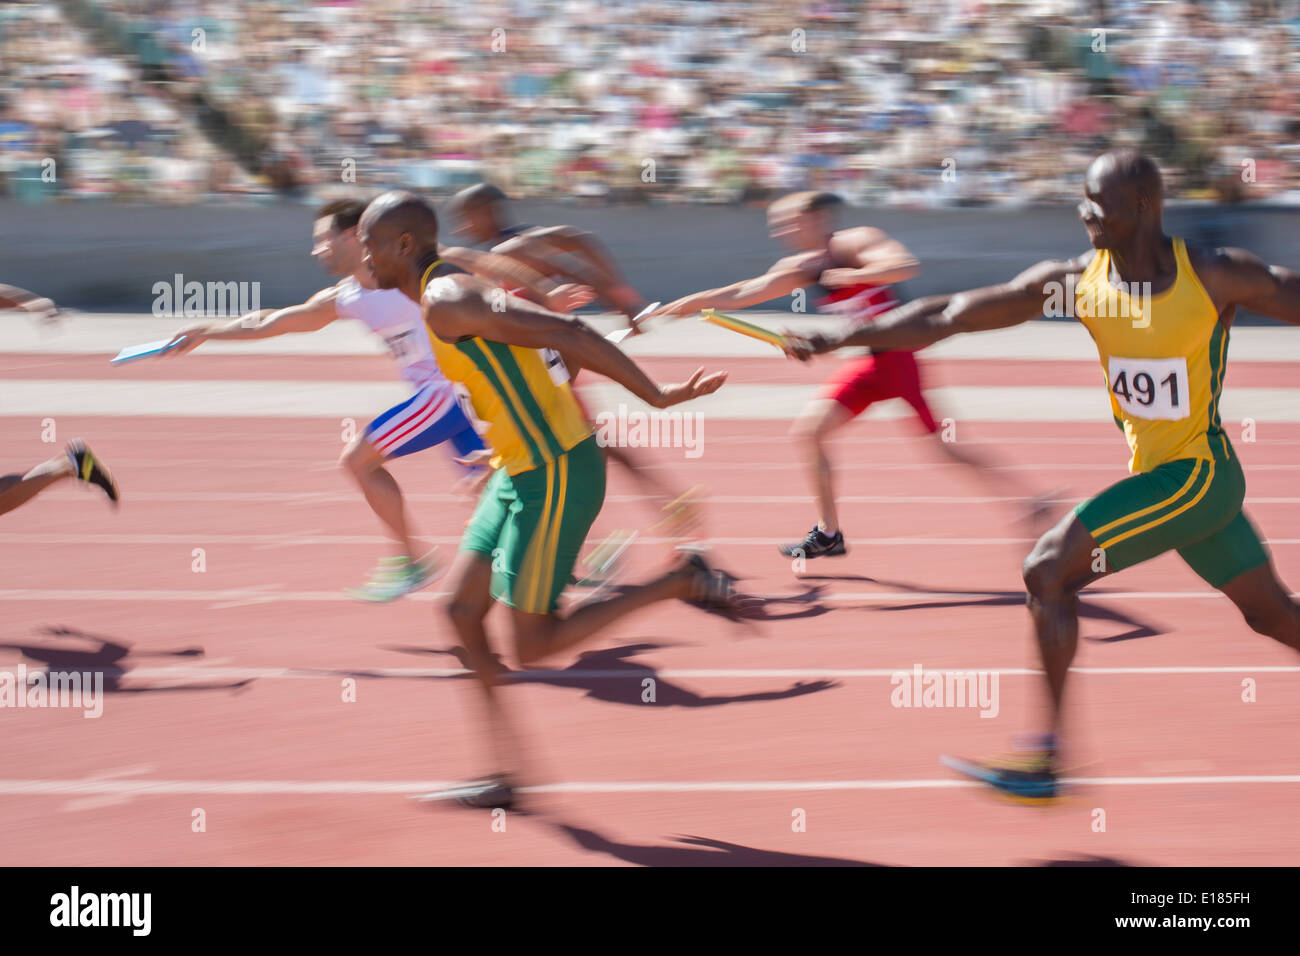 Blurred view of relay runners in race - Stock Image